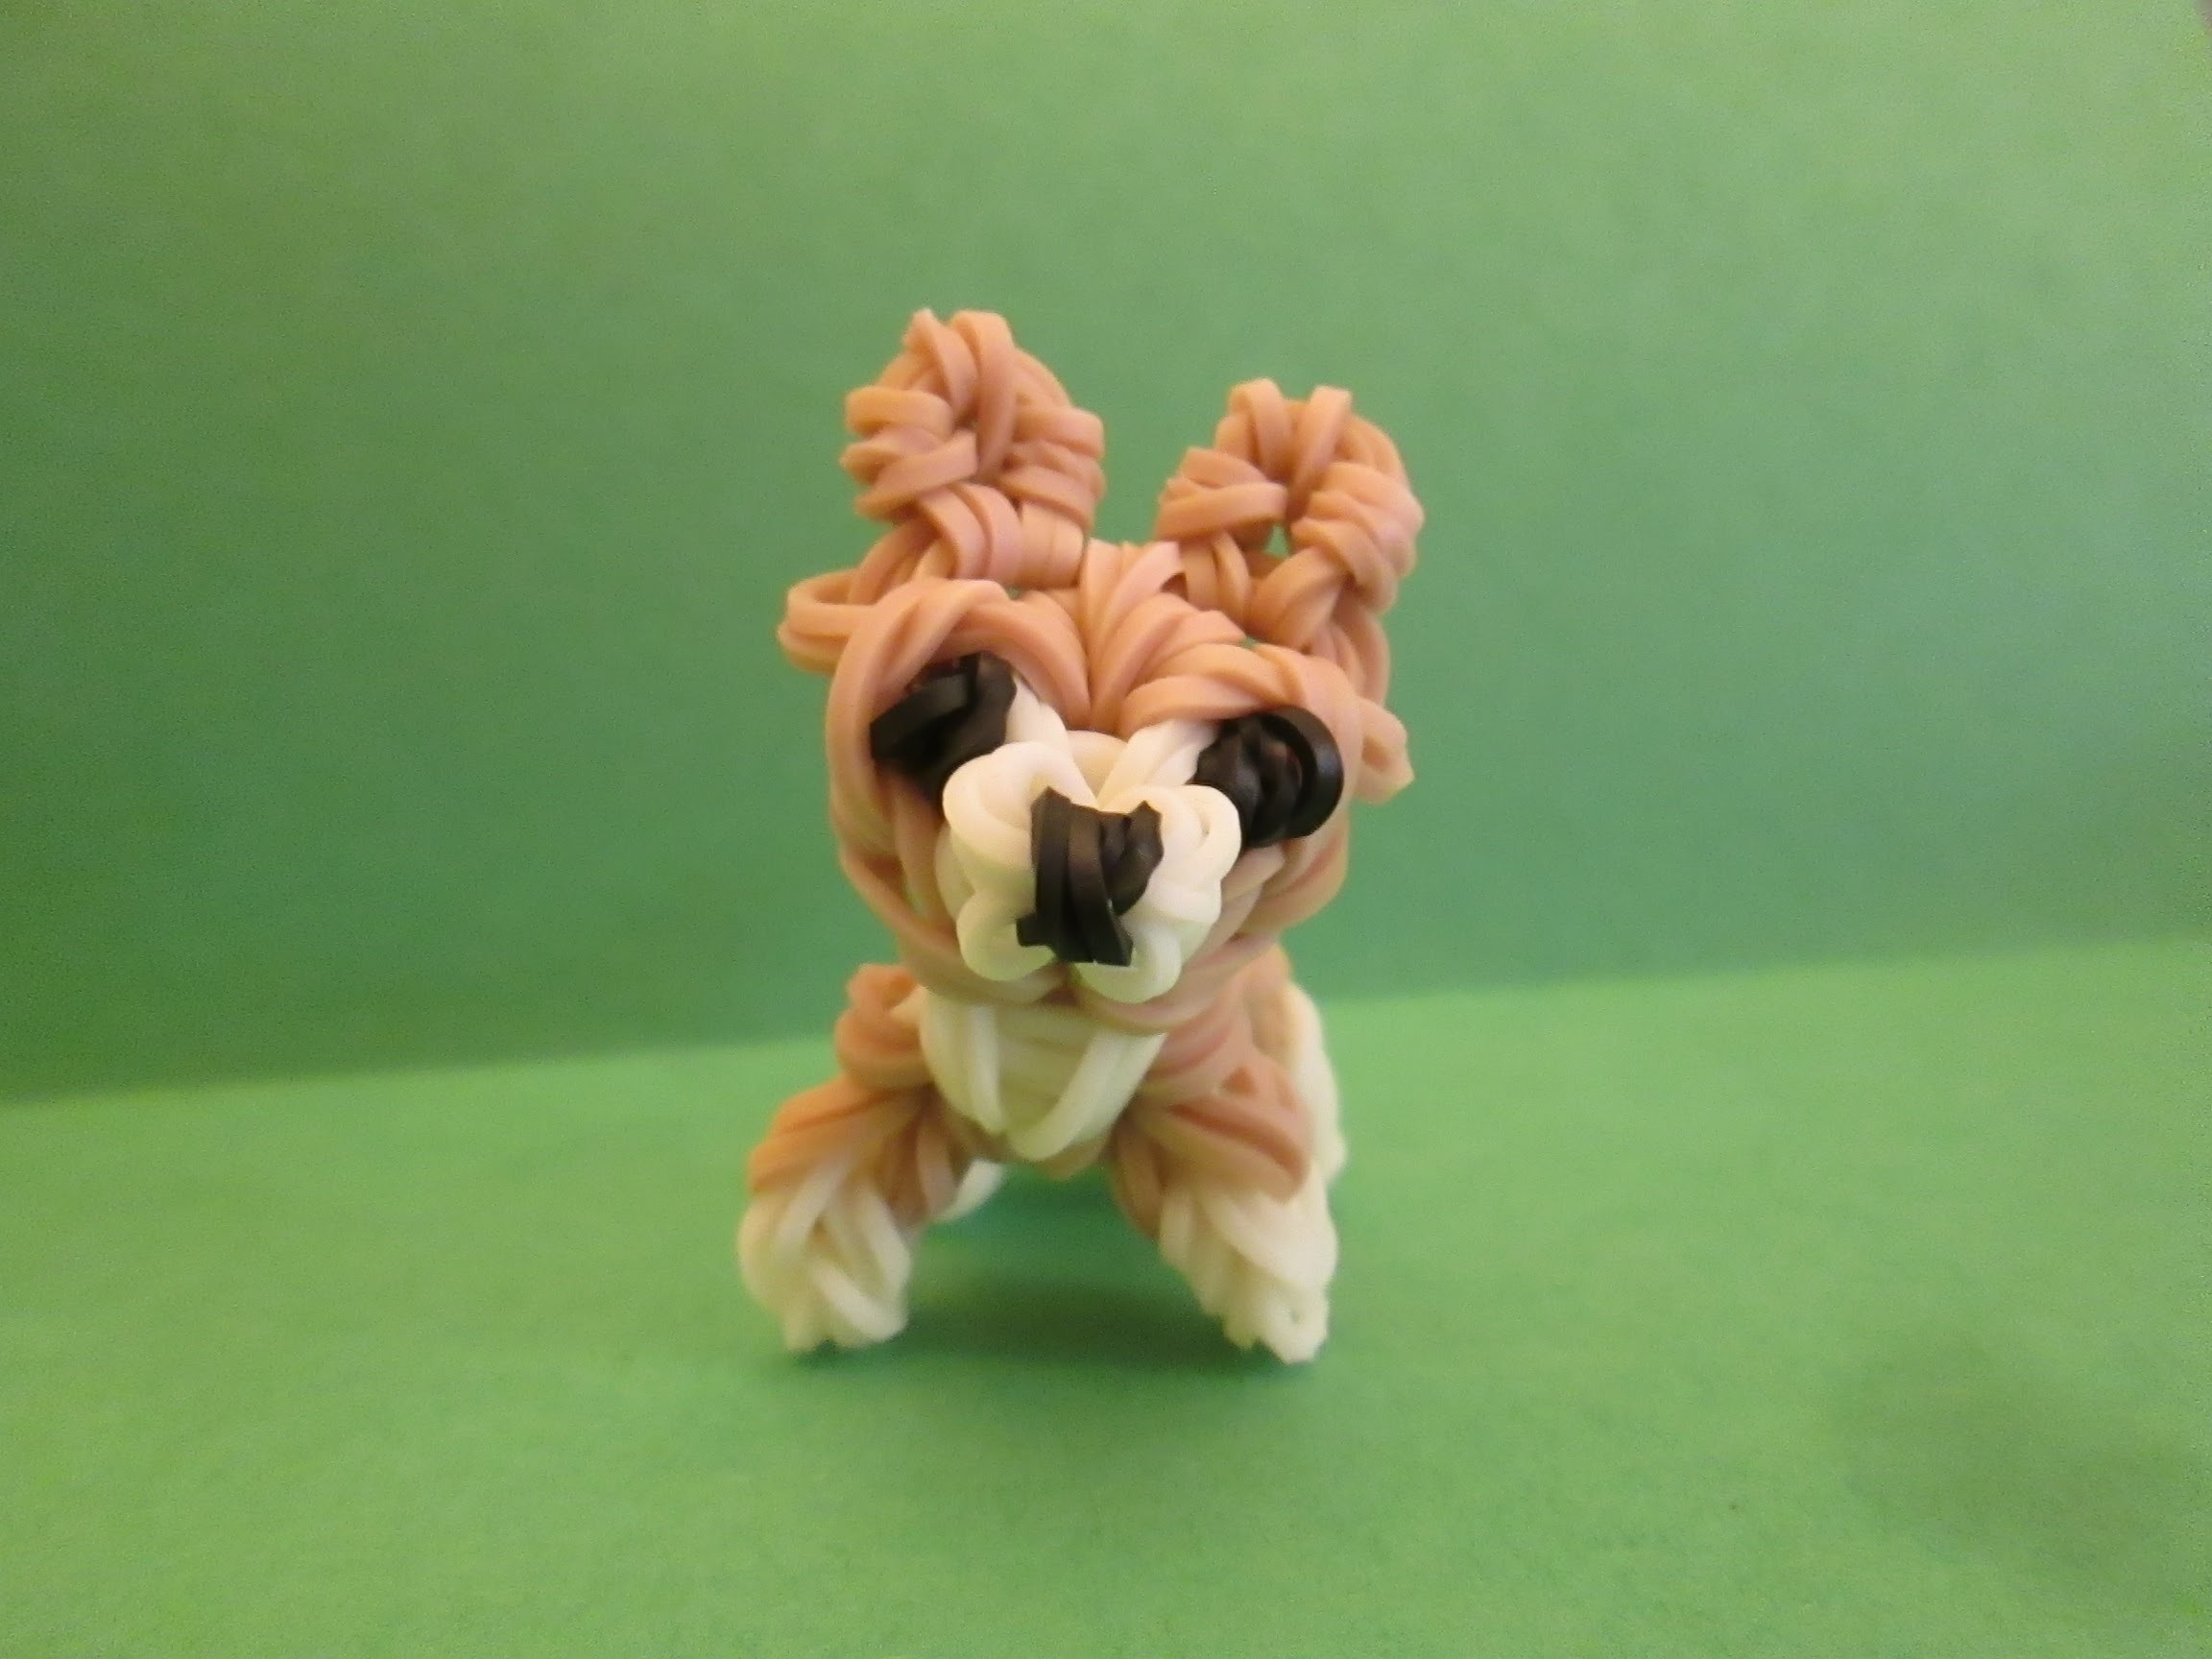 Rainbow Loom Pembroke Welsh Corgi Dog or Puppy Charm. 3-D